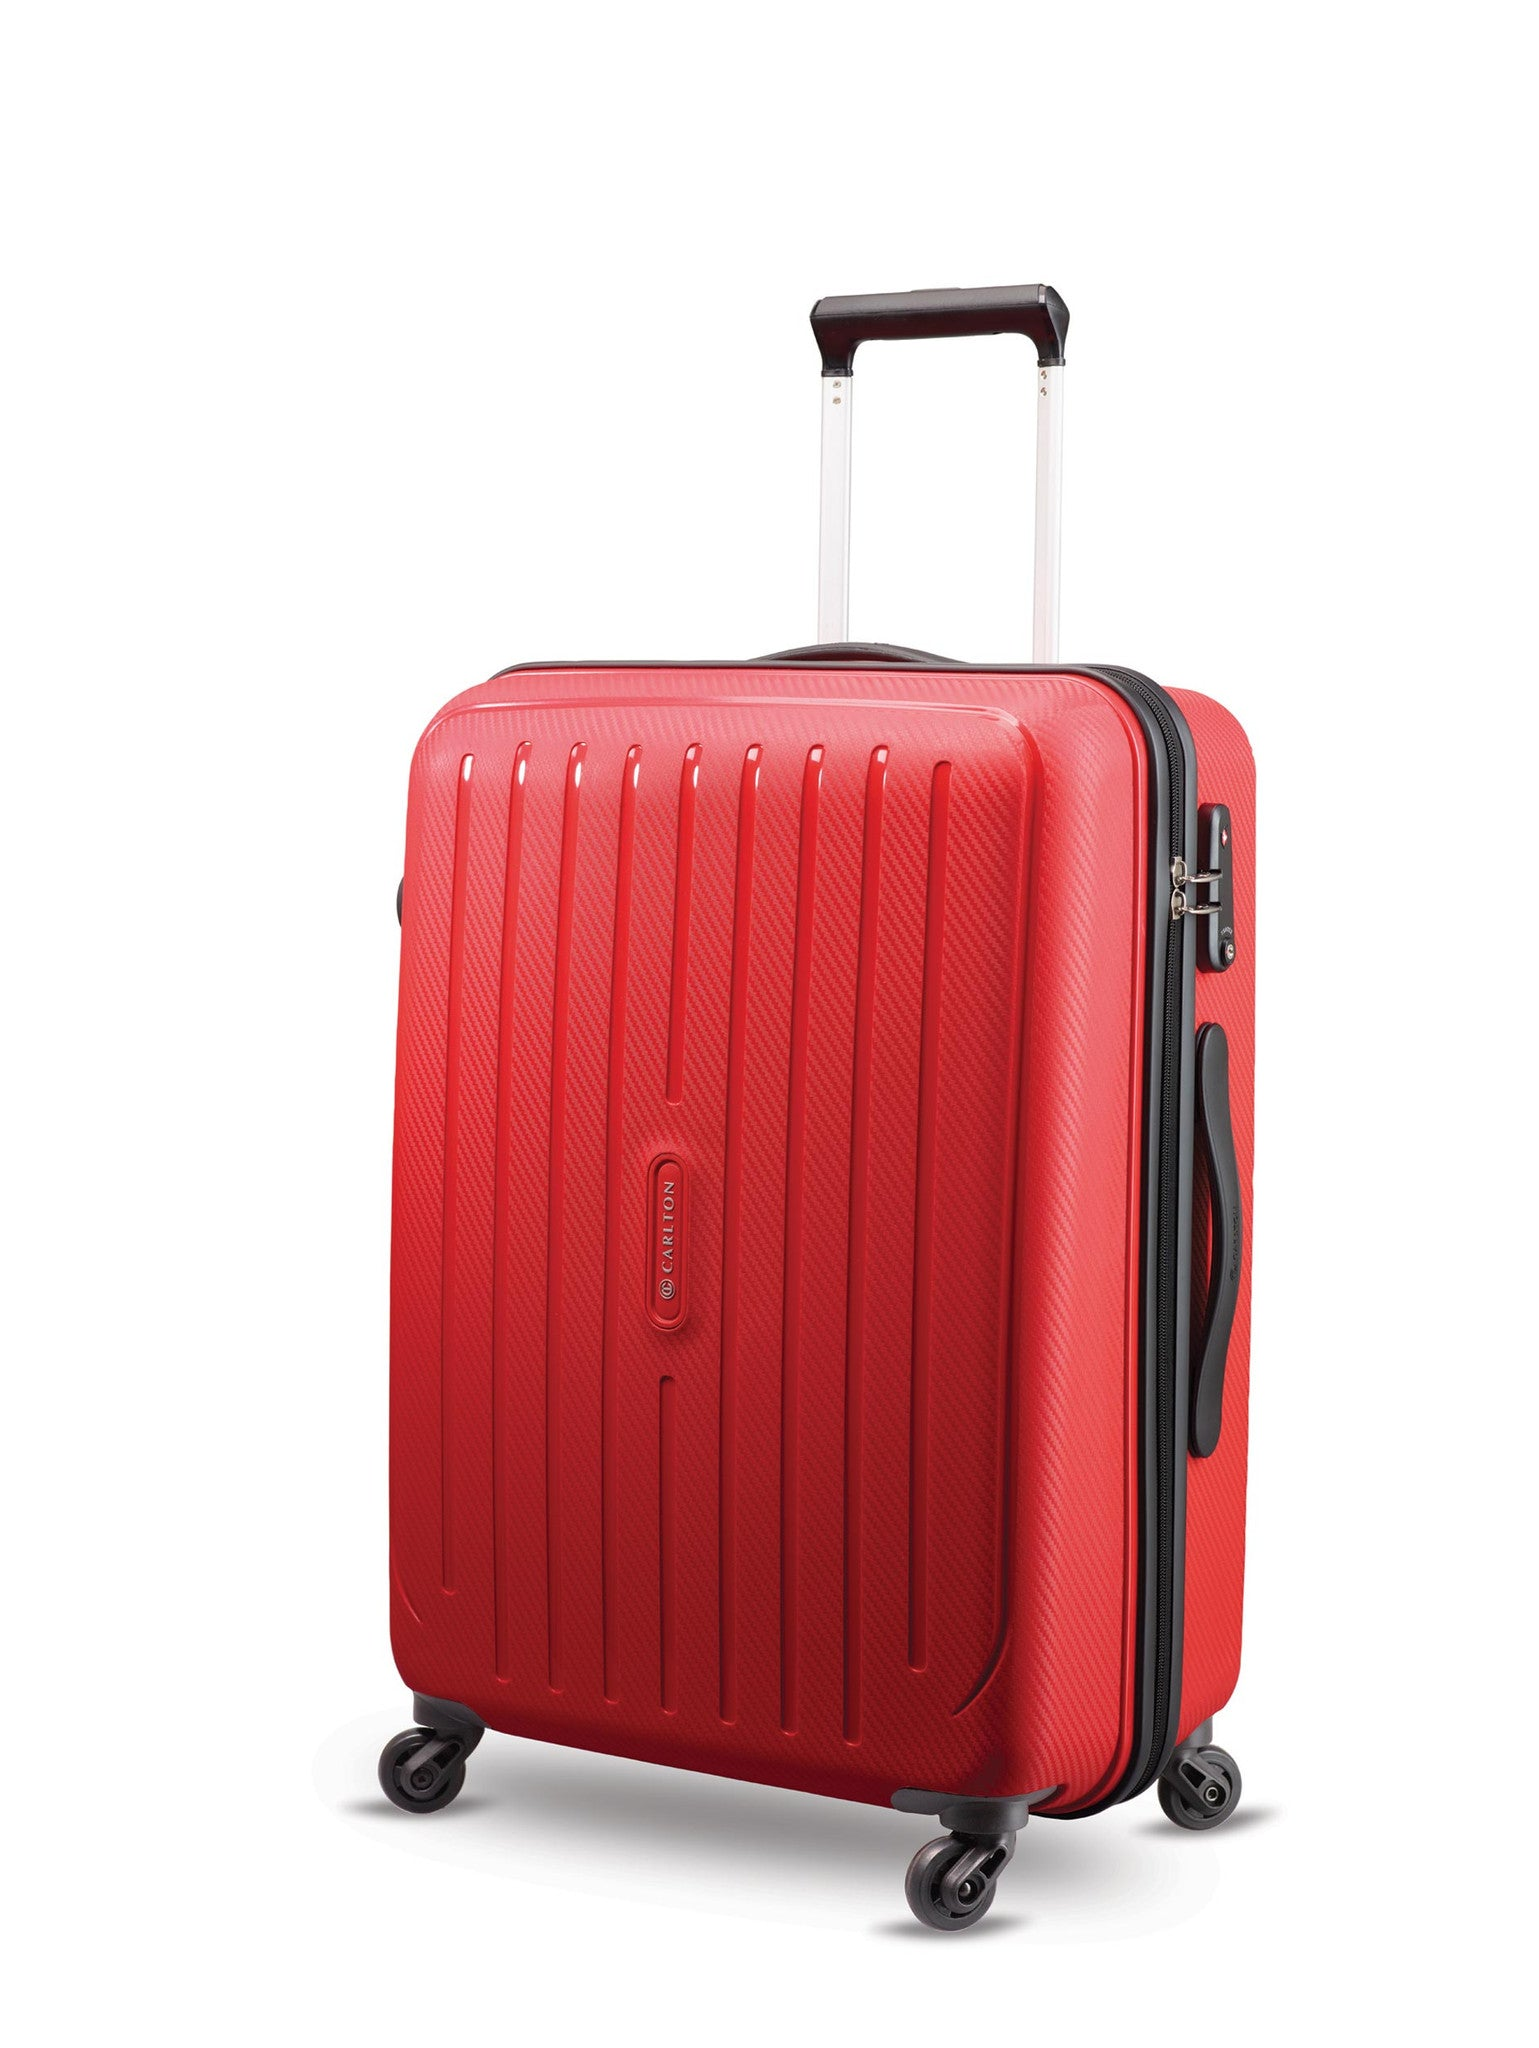 Carlton Phoenix 65cm Size Trolley Case Red